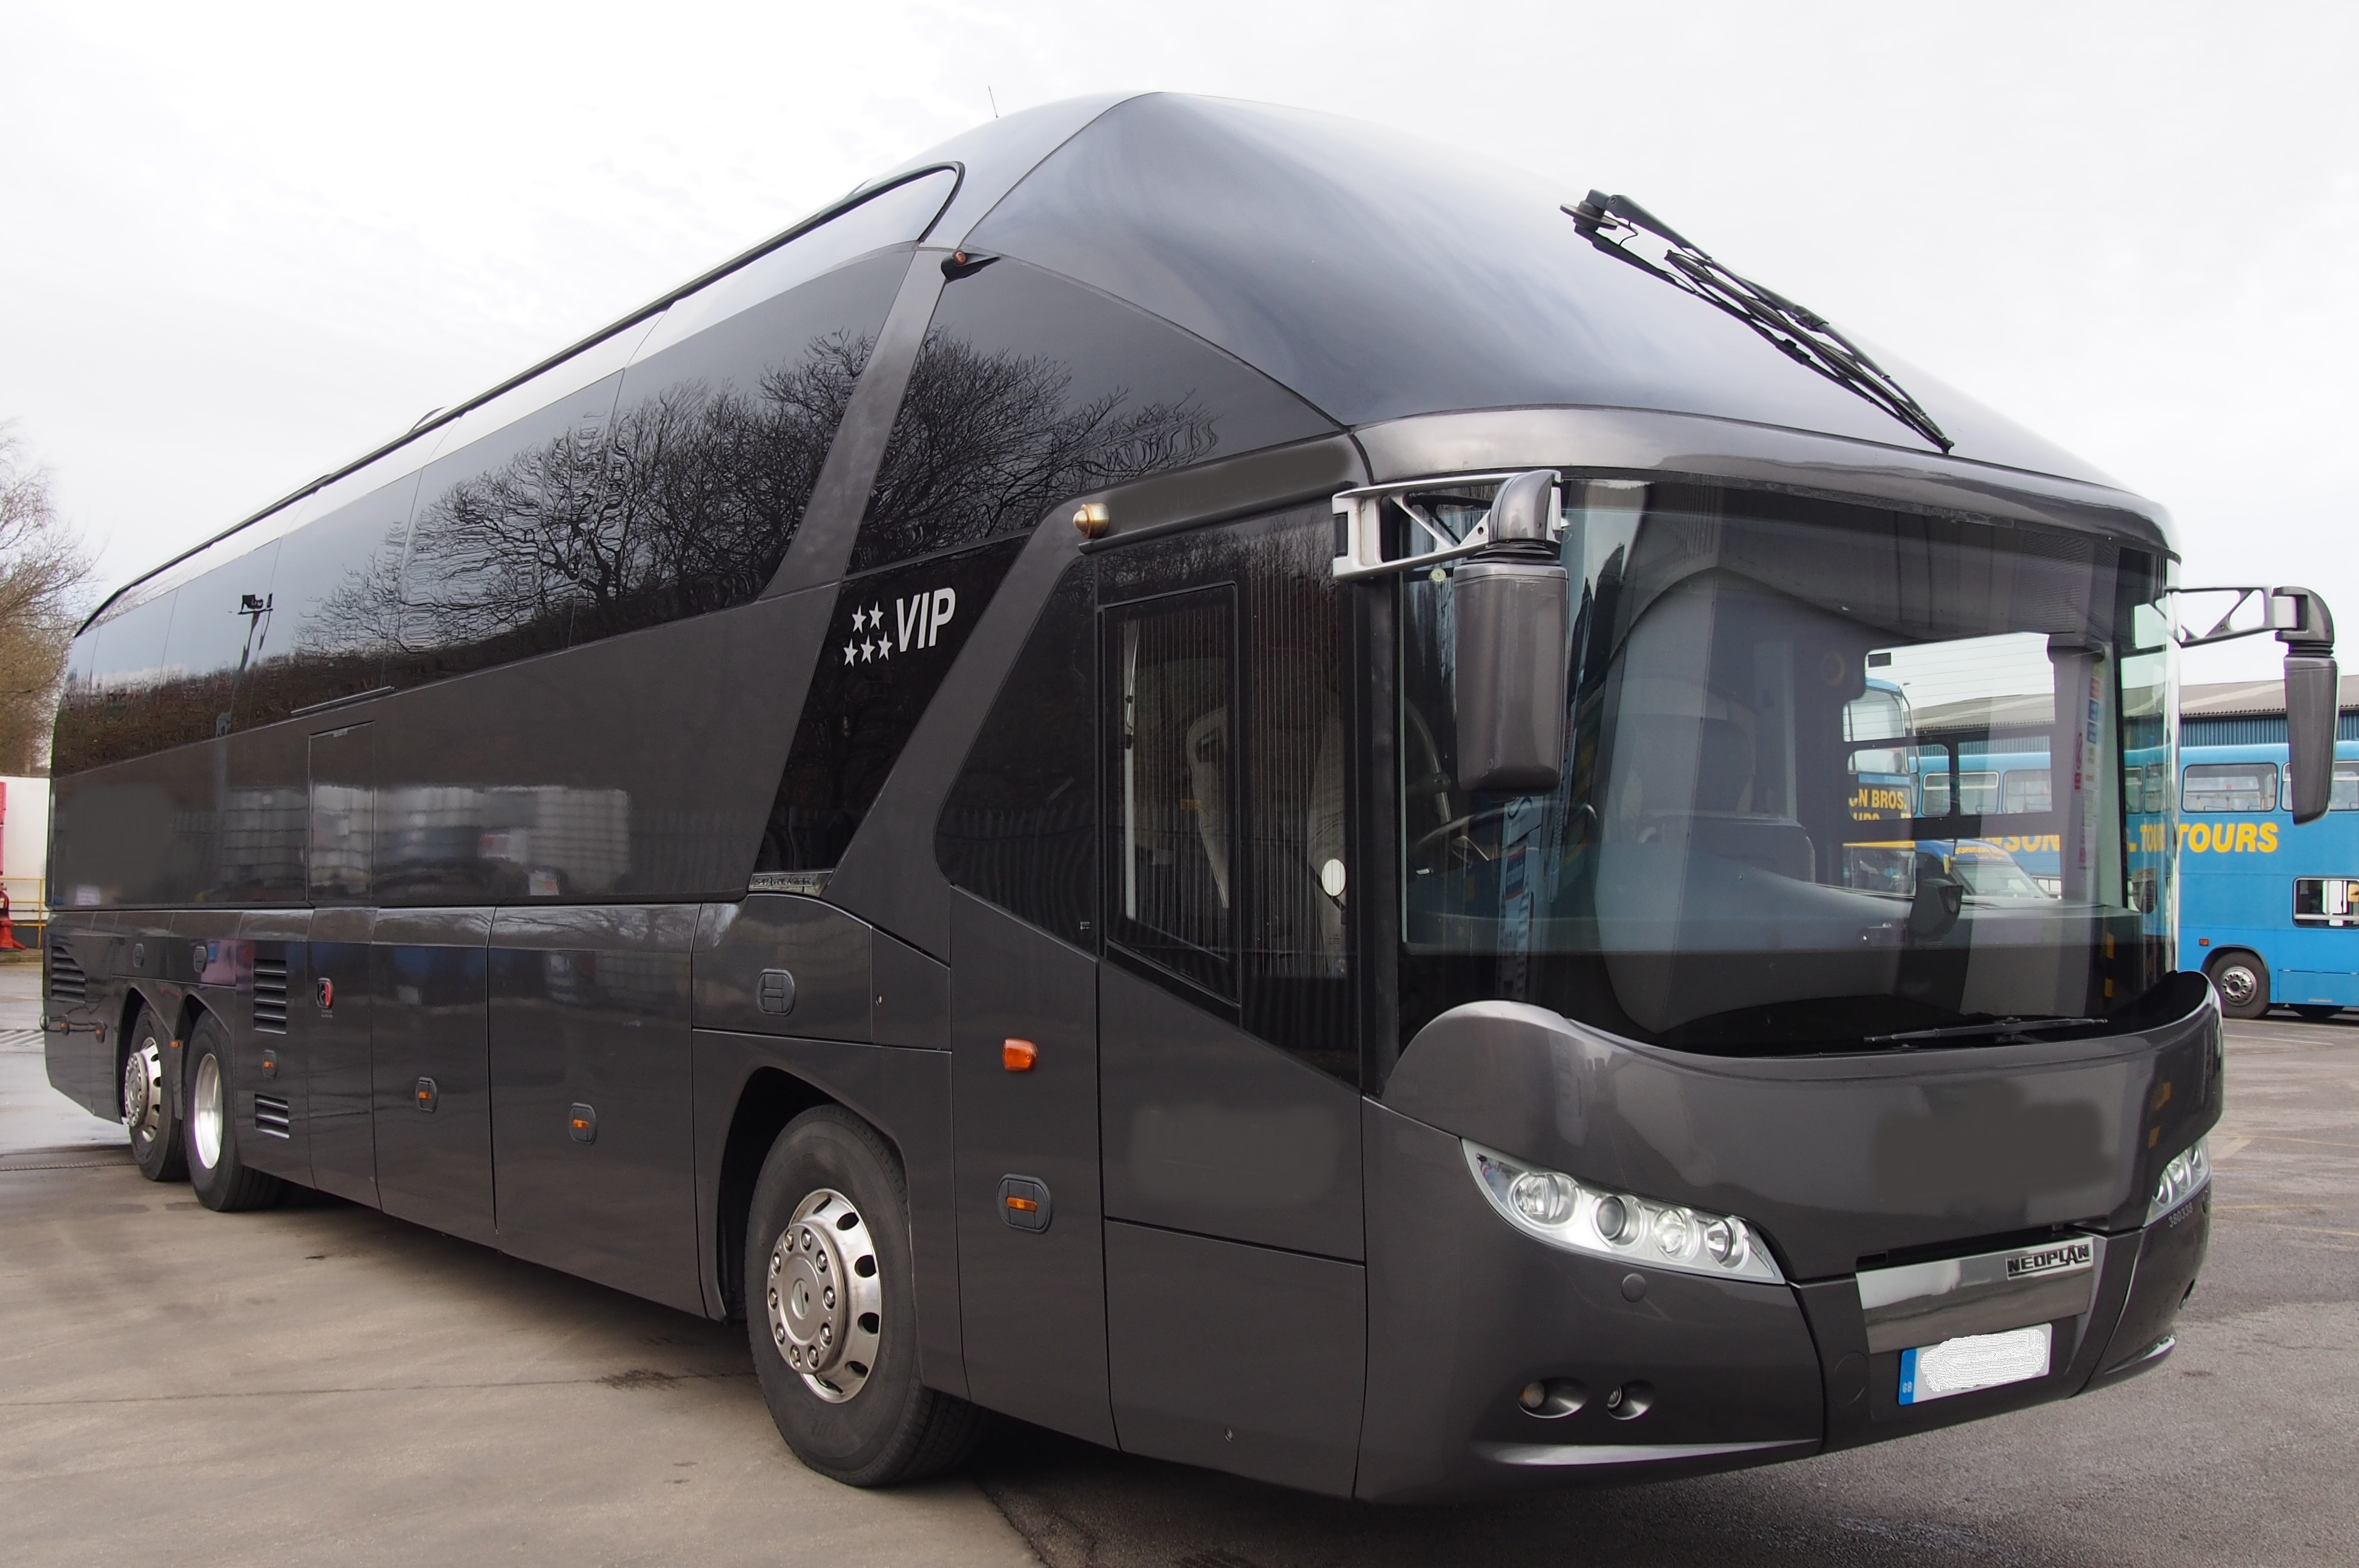 2013 MAN Neoplan Starliner � Full Team Coach Specification-image3